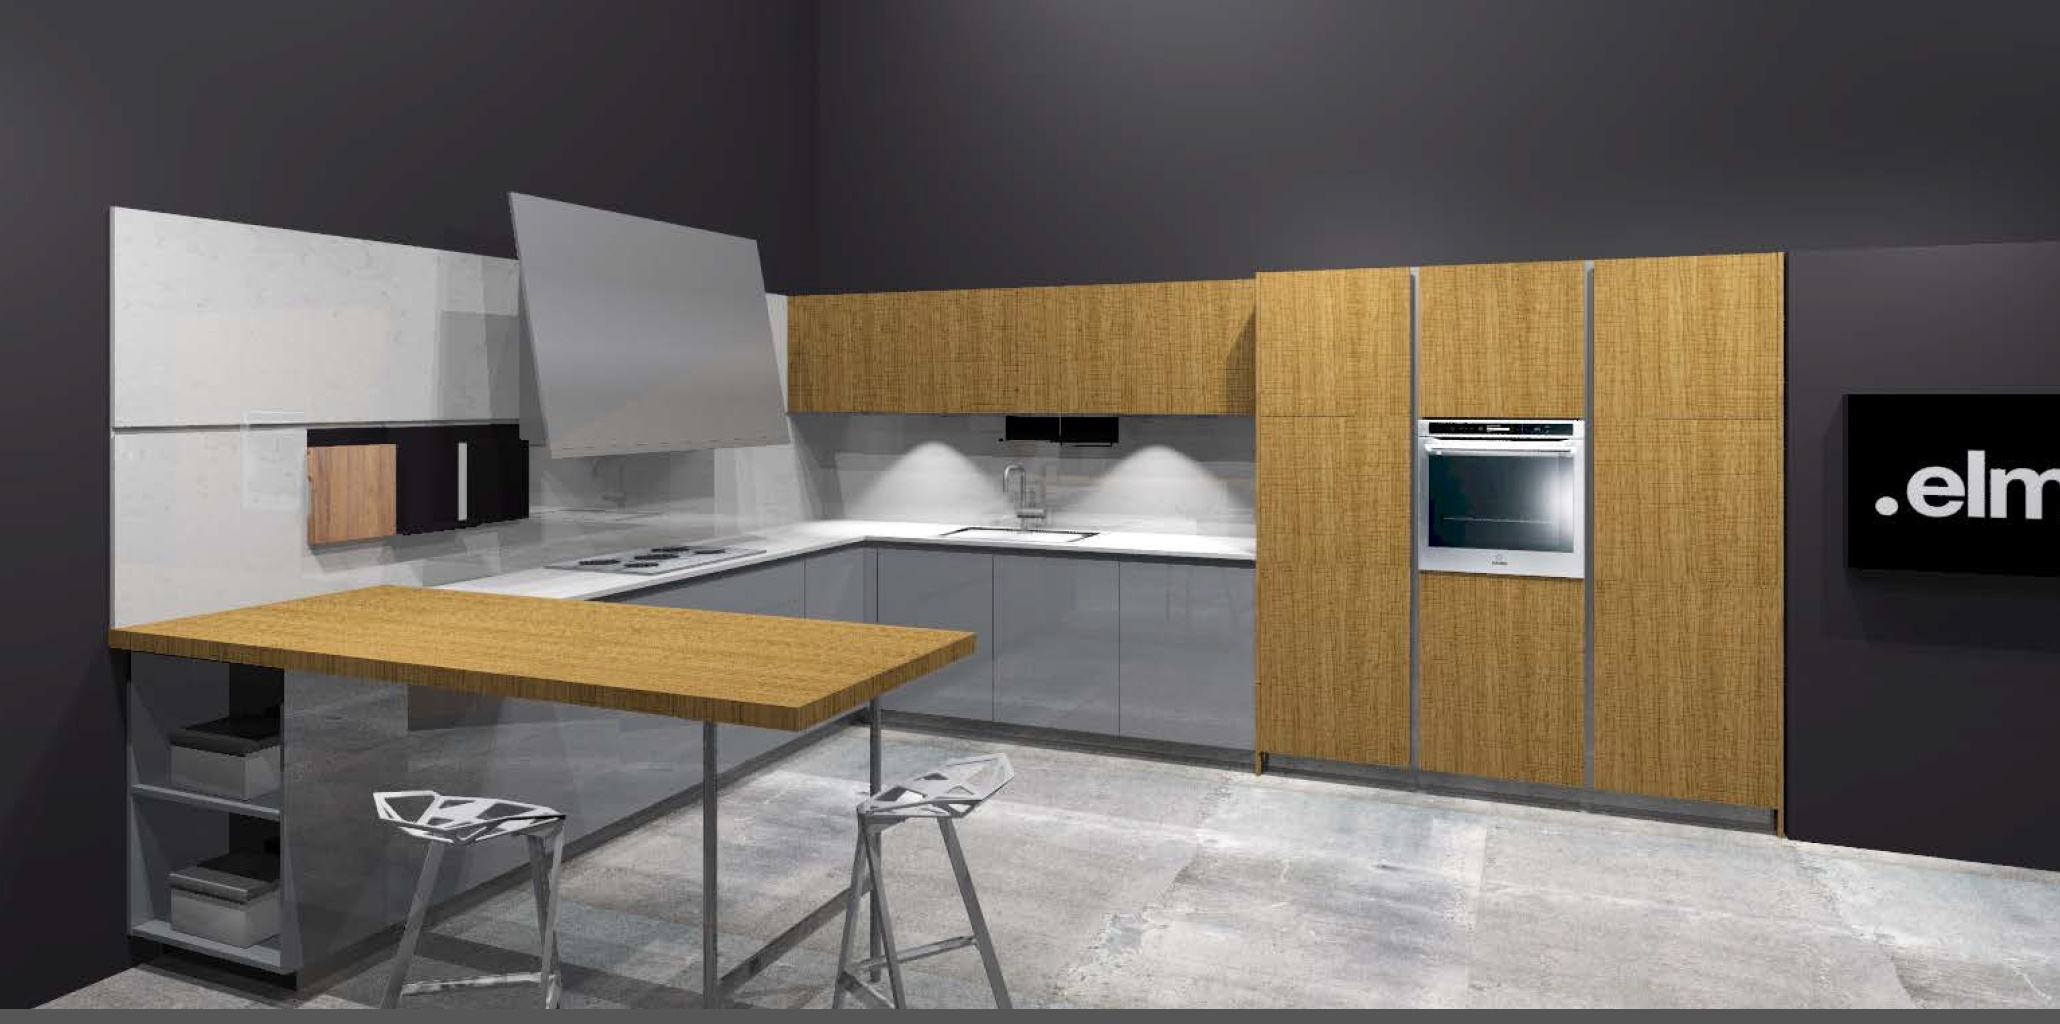 Beautiful Top Cucina Okite Prezzi Gallery - harrop.us - harrop.us